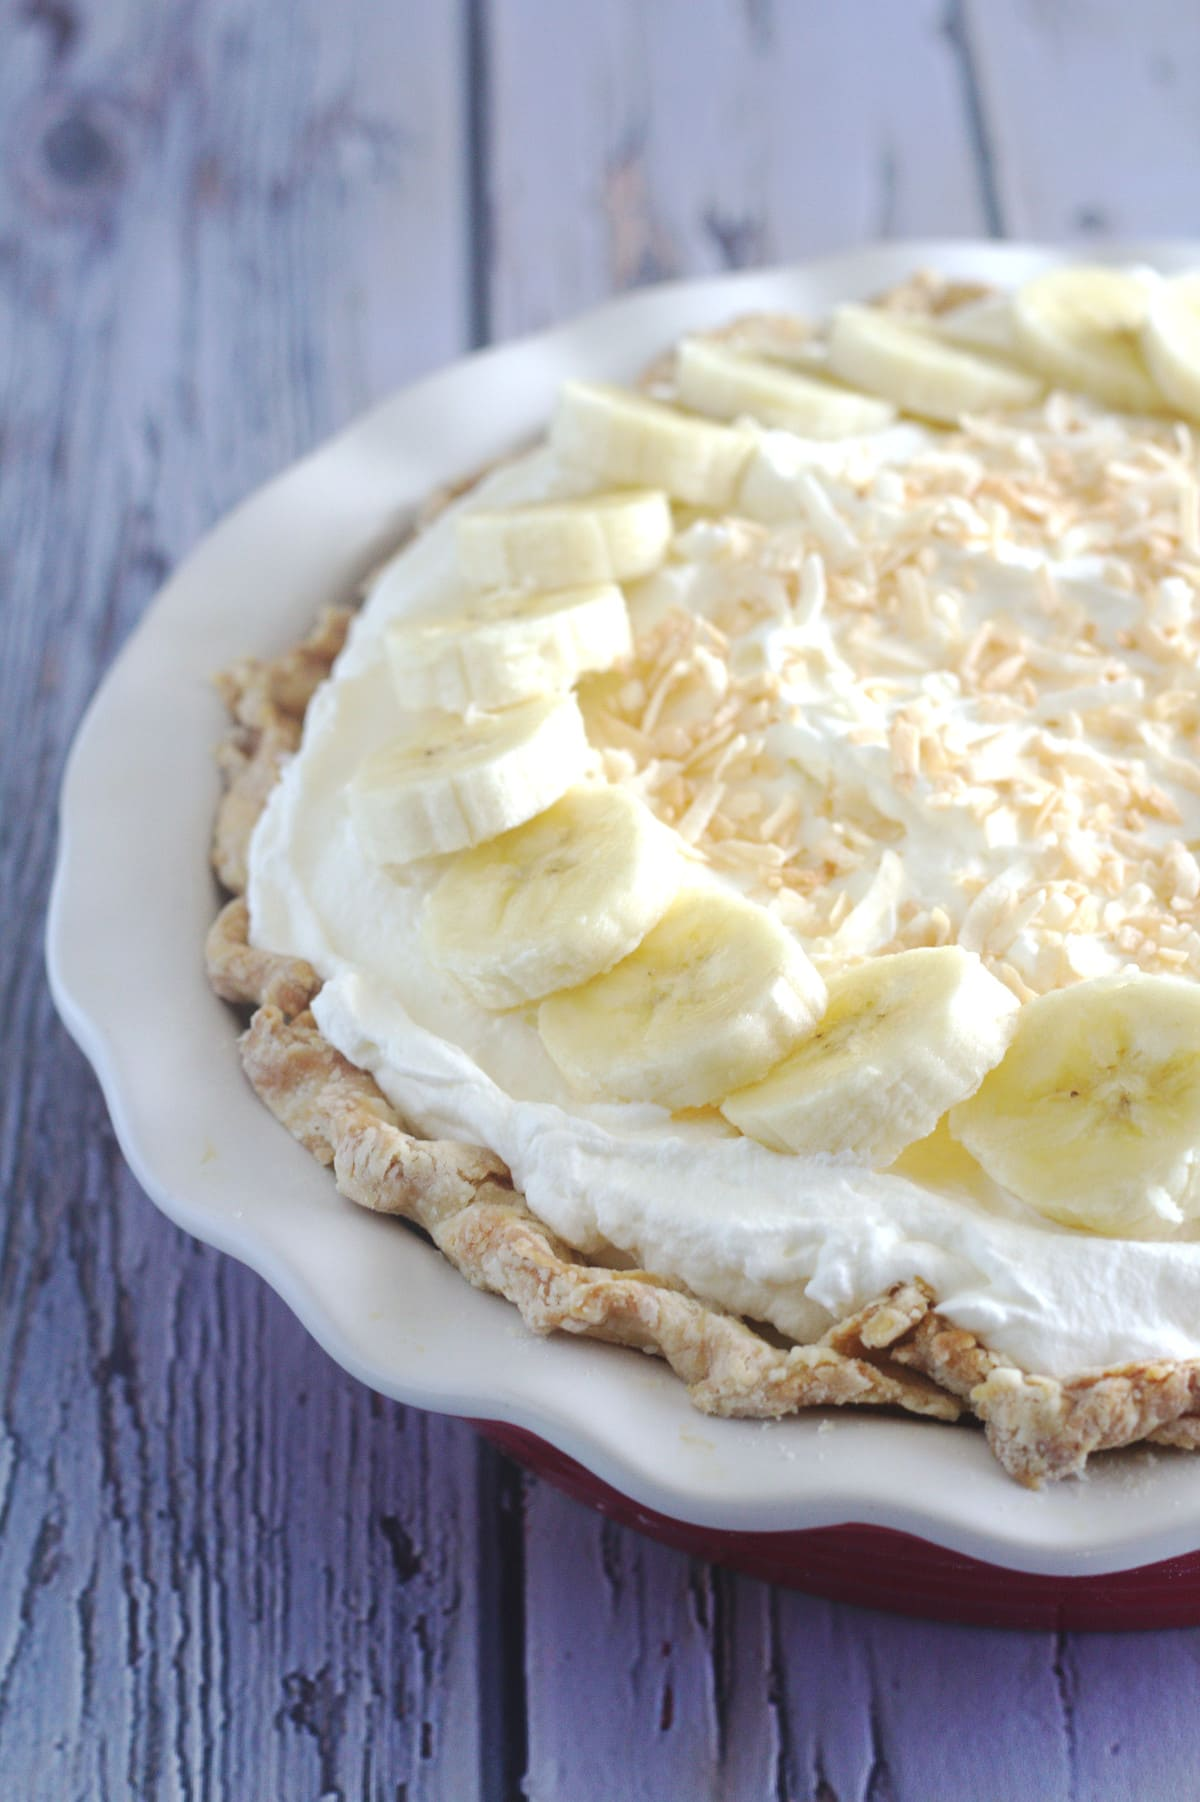 A full pie decorated with whipped crea, banana slices and toasted coconut flakes.